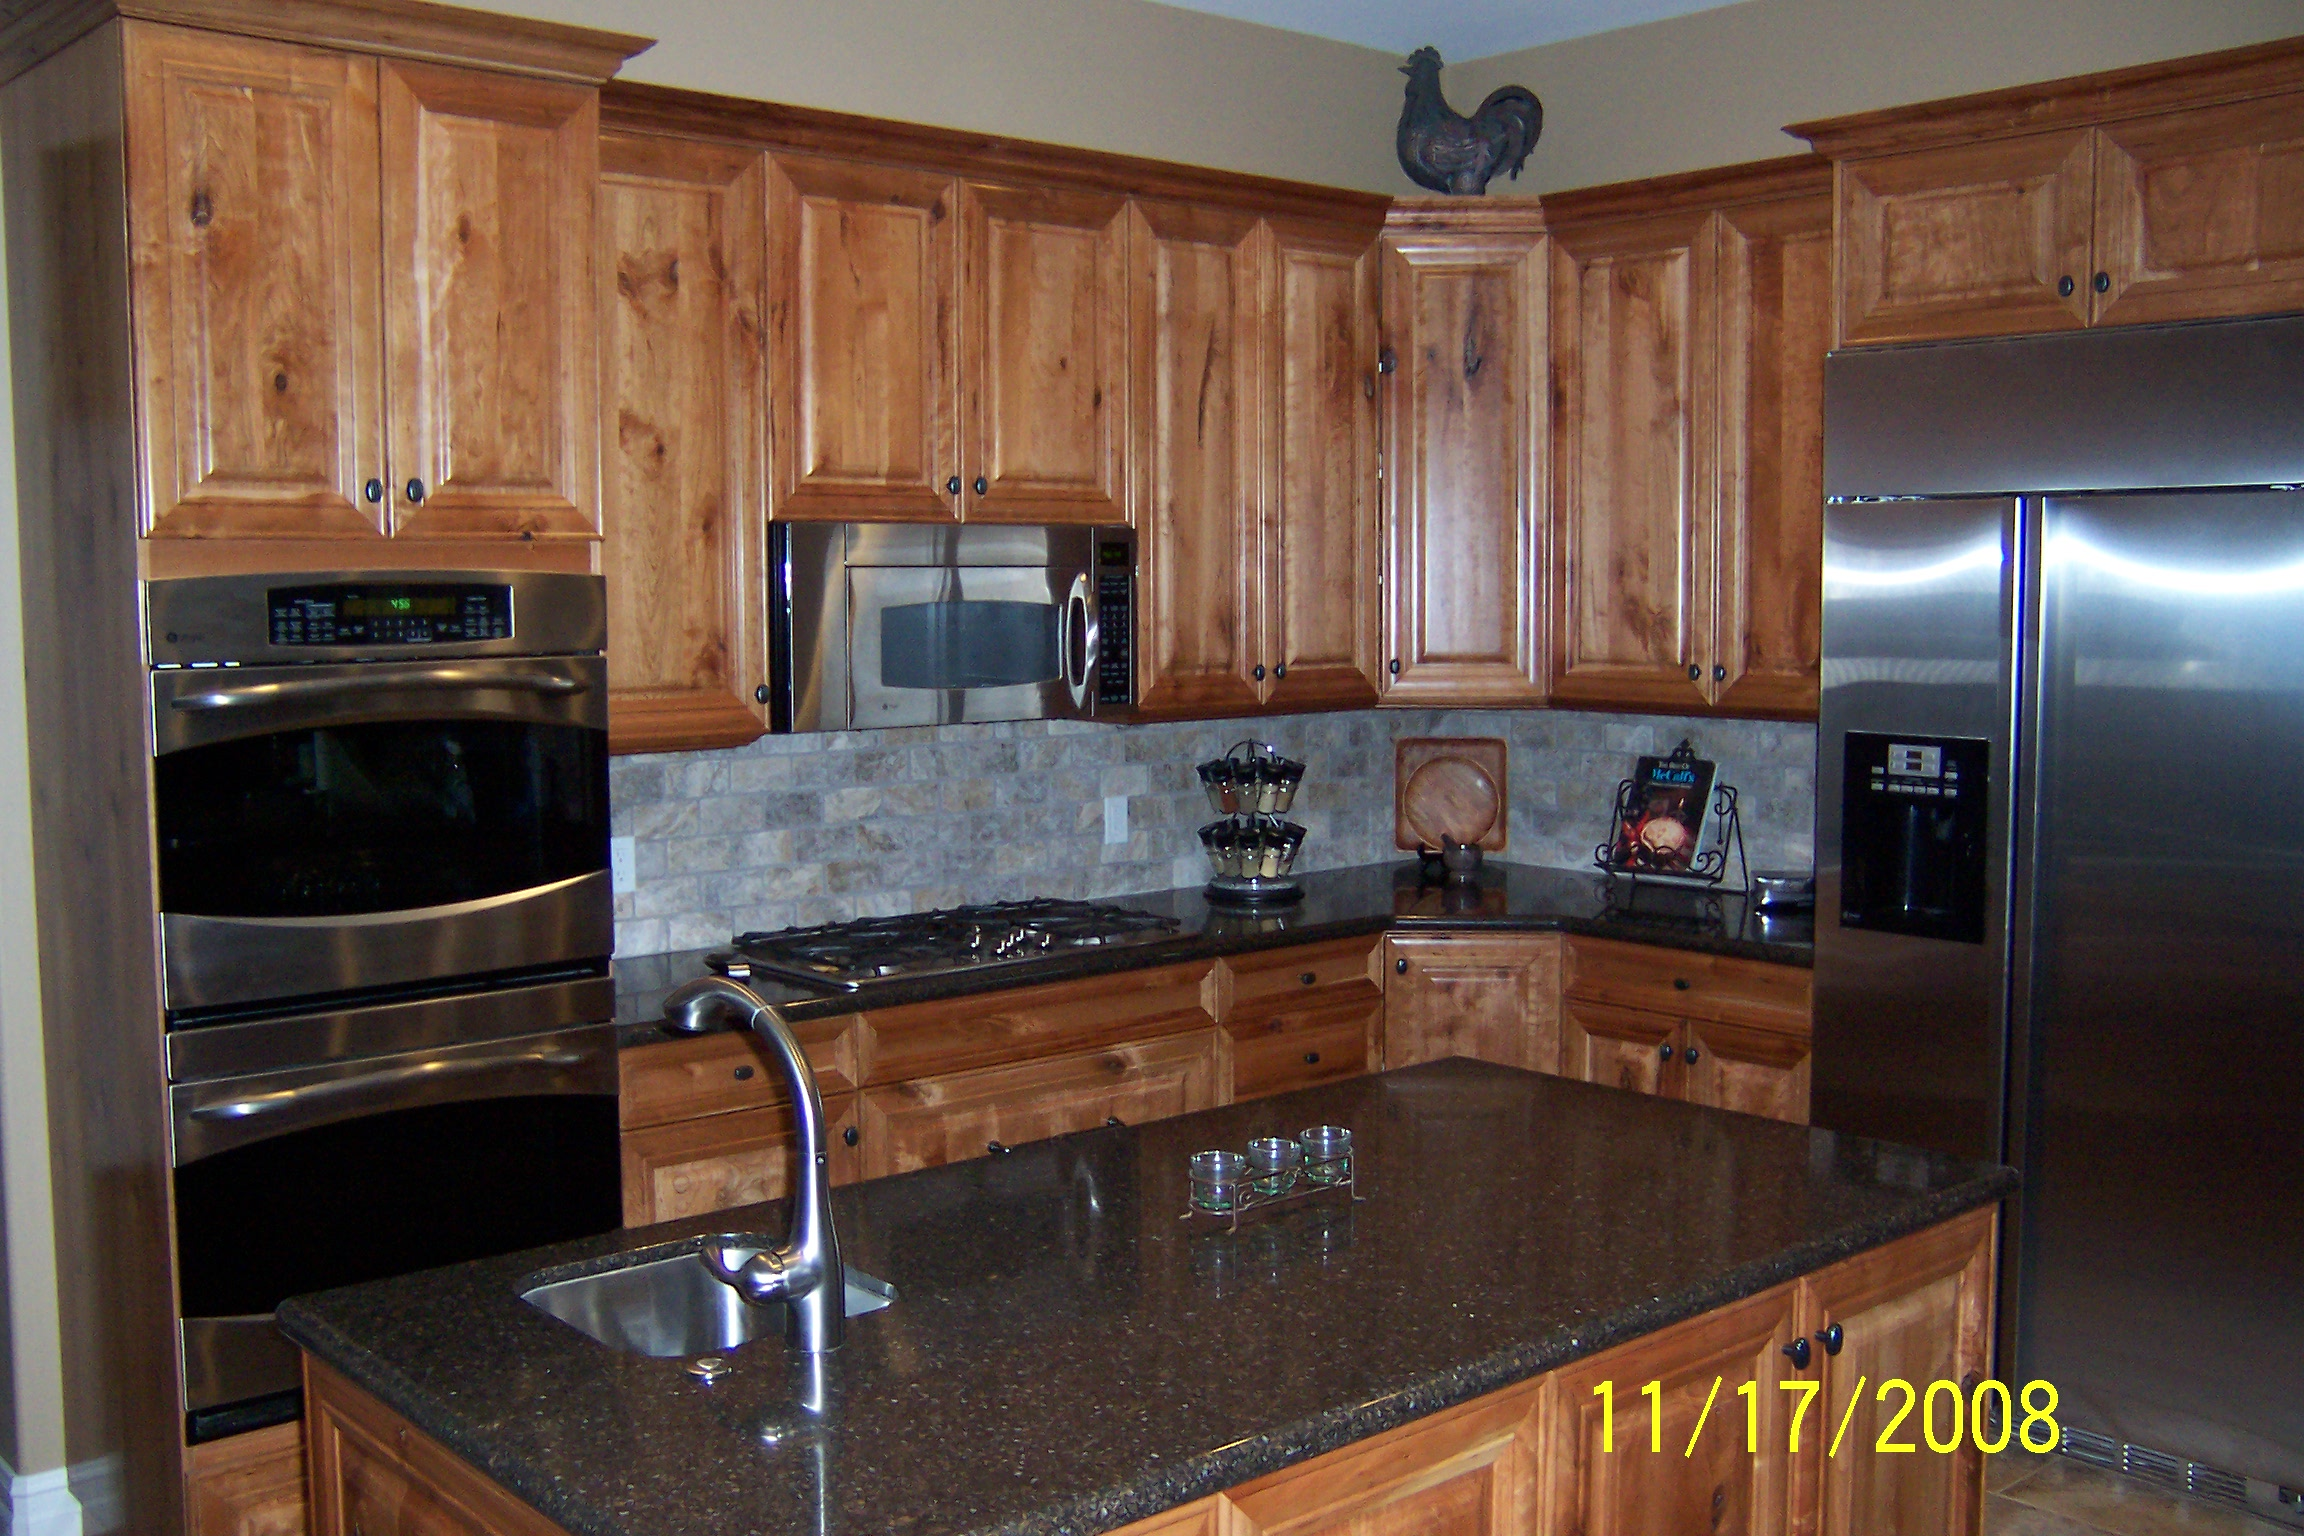 Knotty Cherry Cabinets http://www.woodweb.com/knowledge_base/Sourcing_Knotty_Cherry_Lumber.html